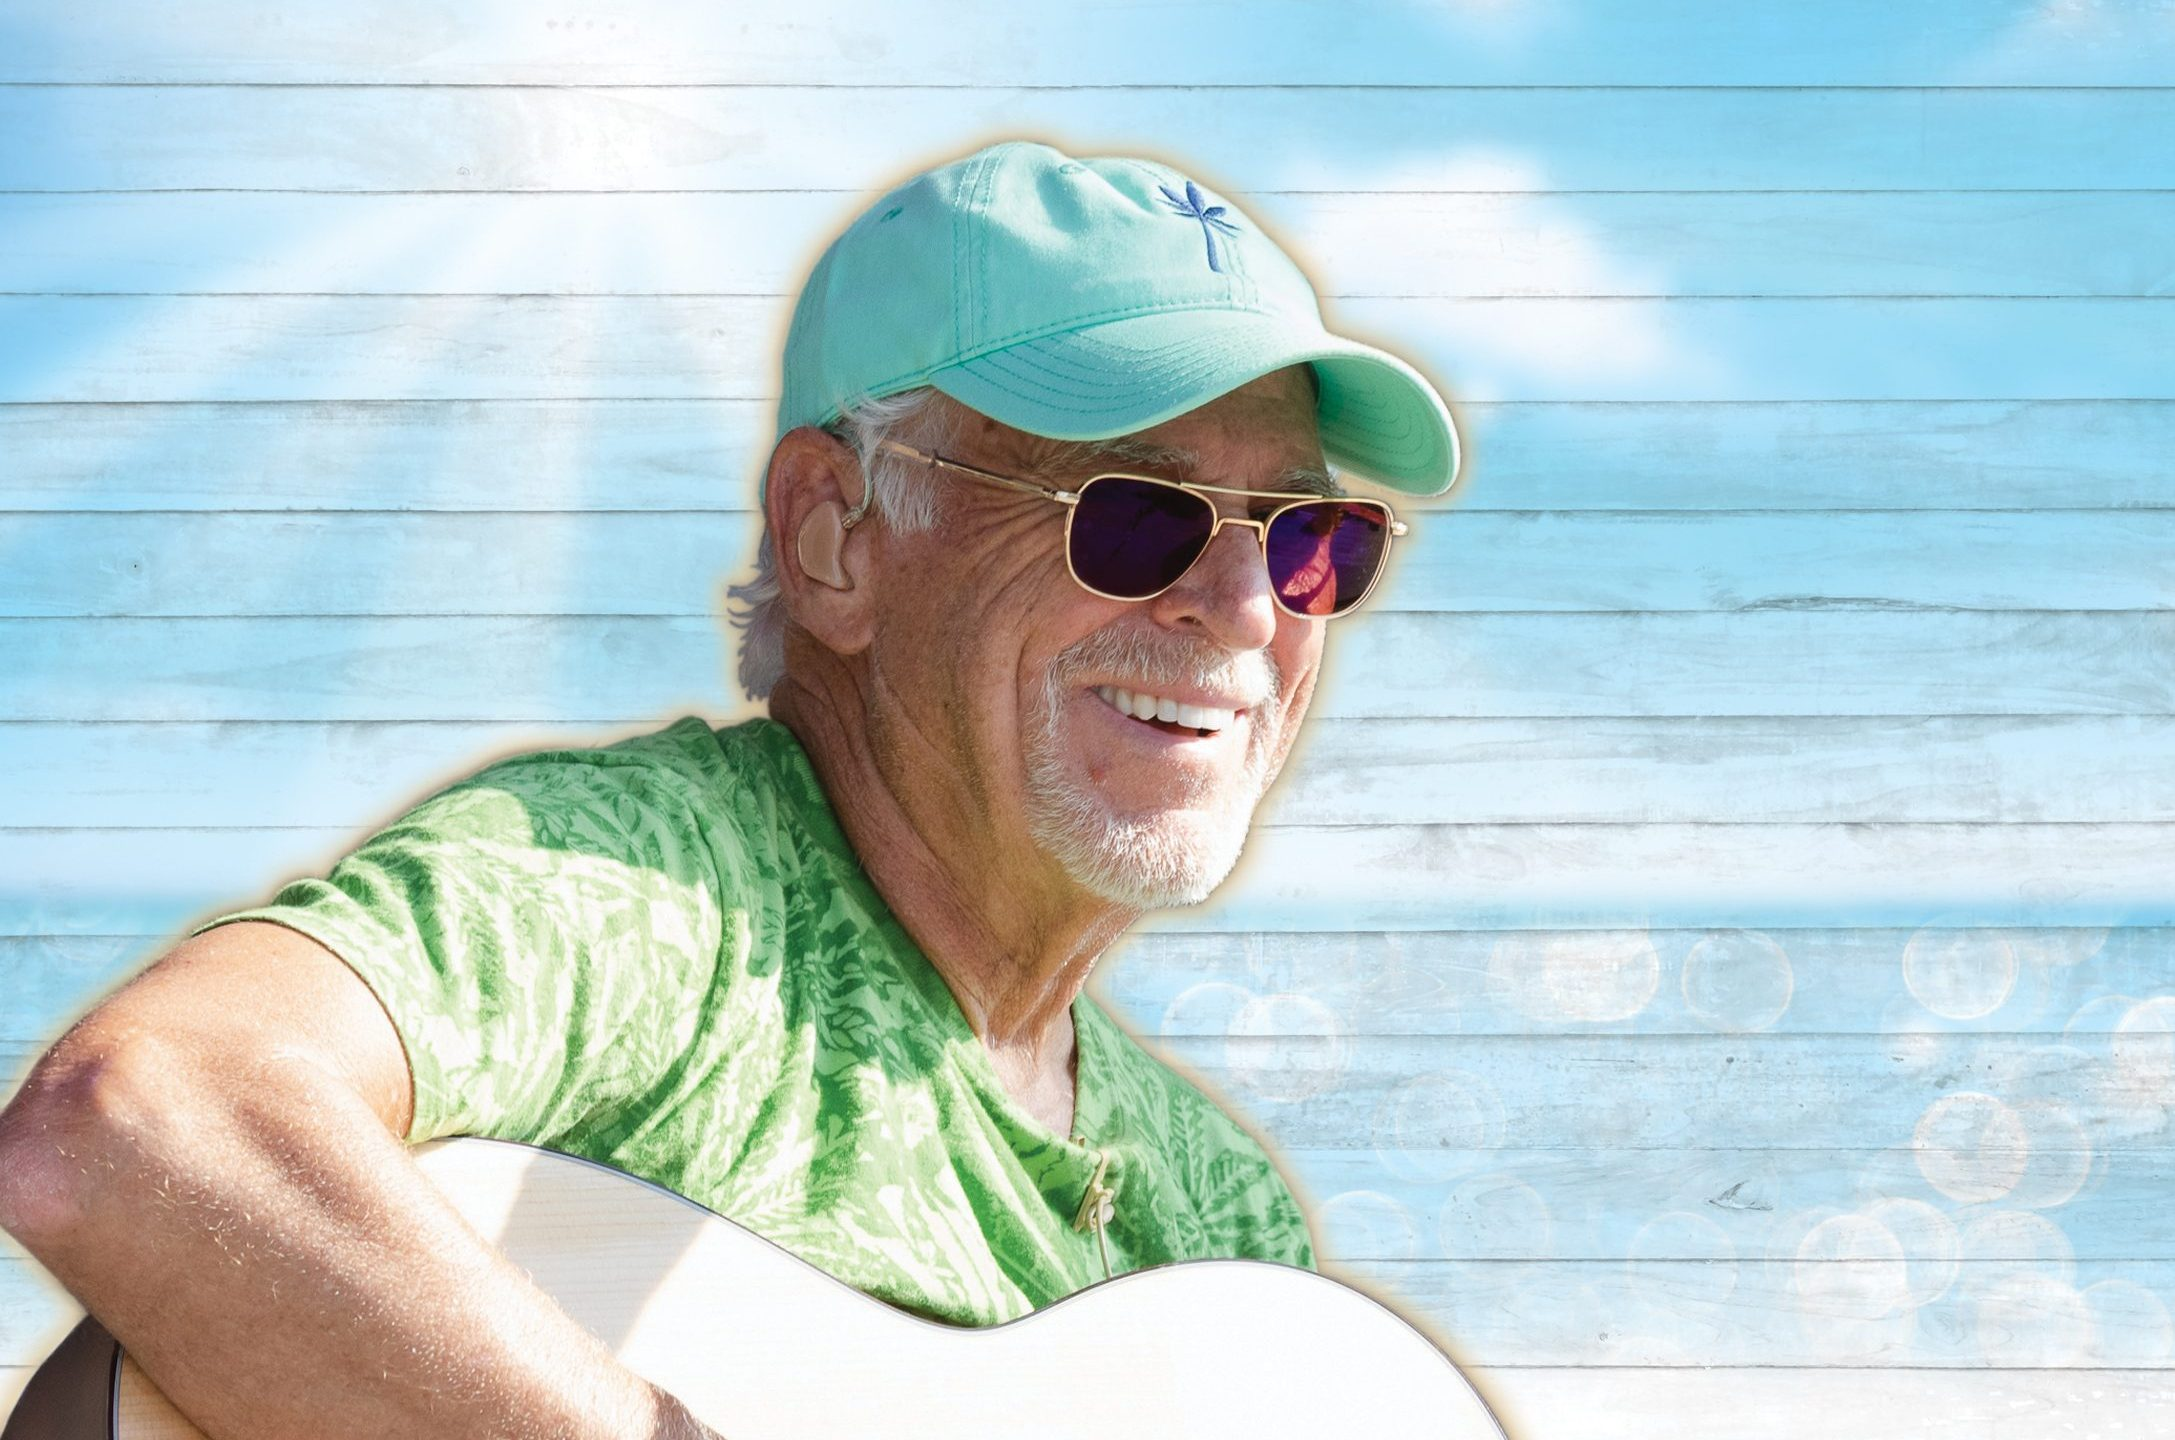 Jimmy Buffett and the Coral Reefer Band will perform at Tuscaloosa Amphitheater for one night only